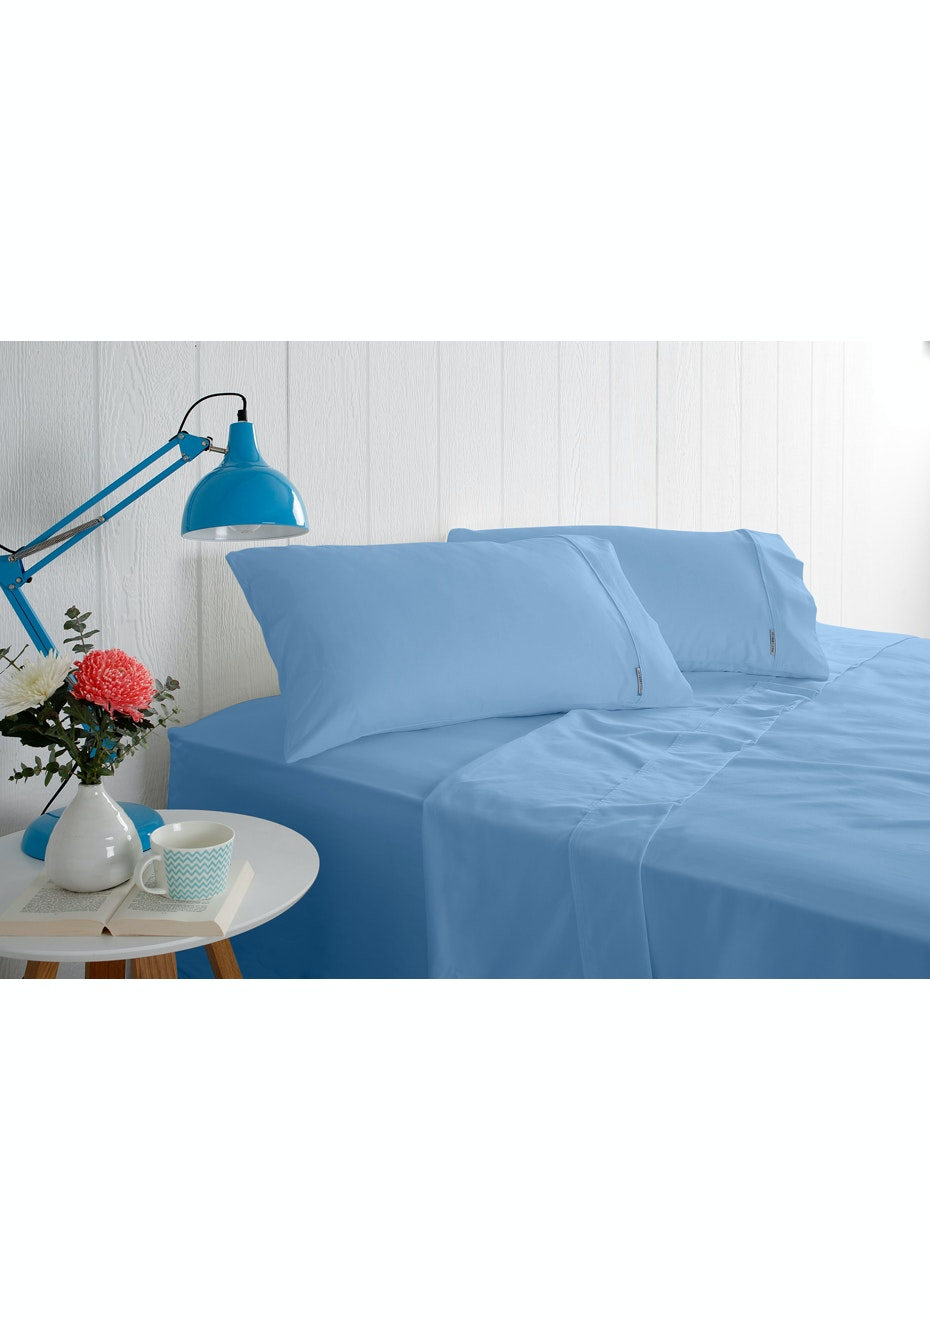 Odyssey Living 1000 Thread Count – Cotton Rich Sheet Sets - Bluebird - Double Bed